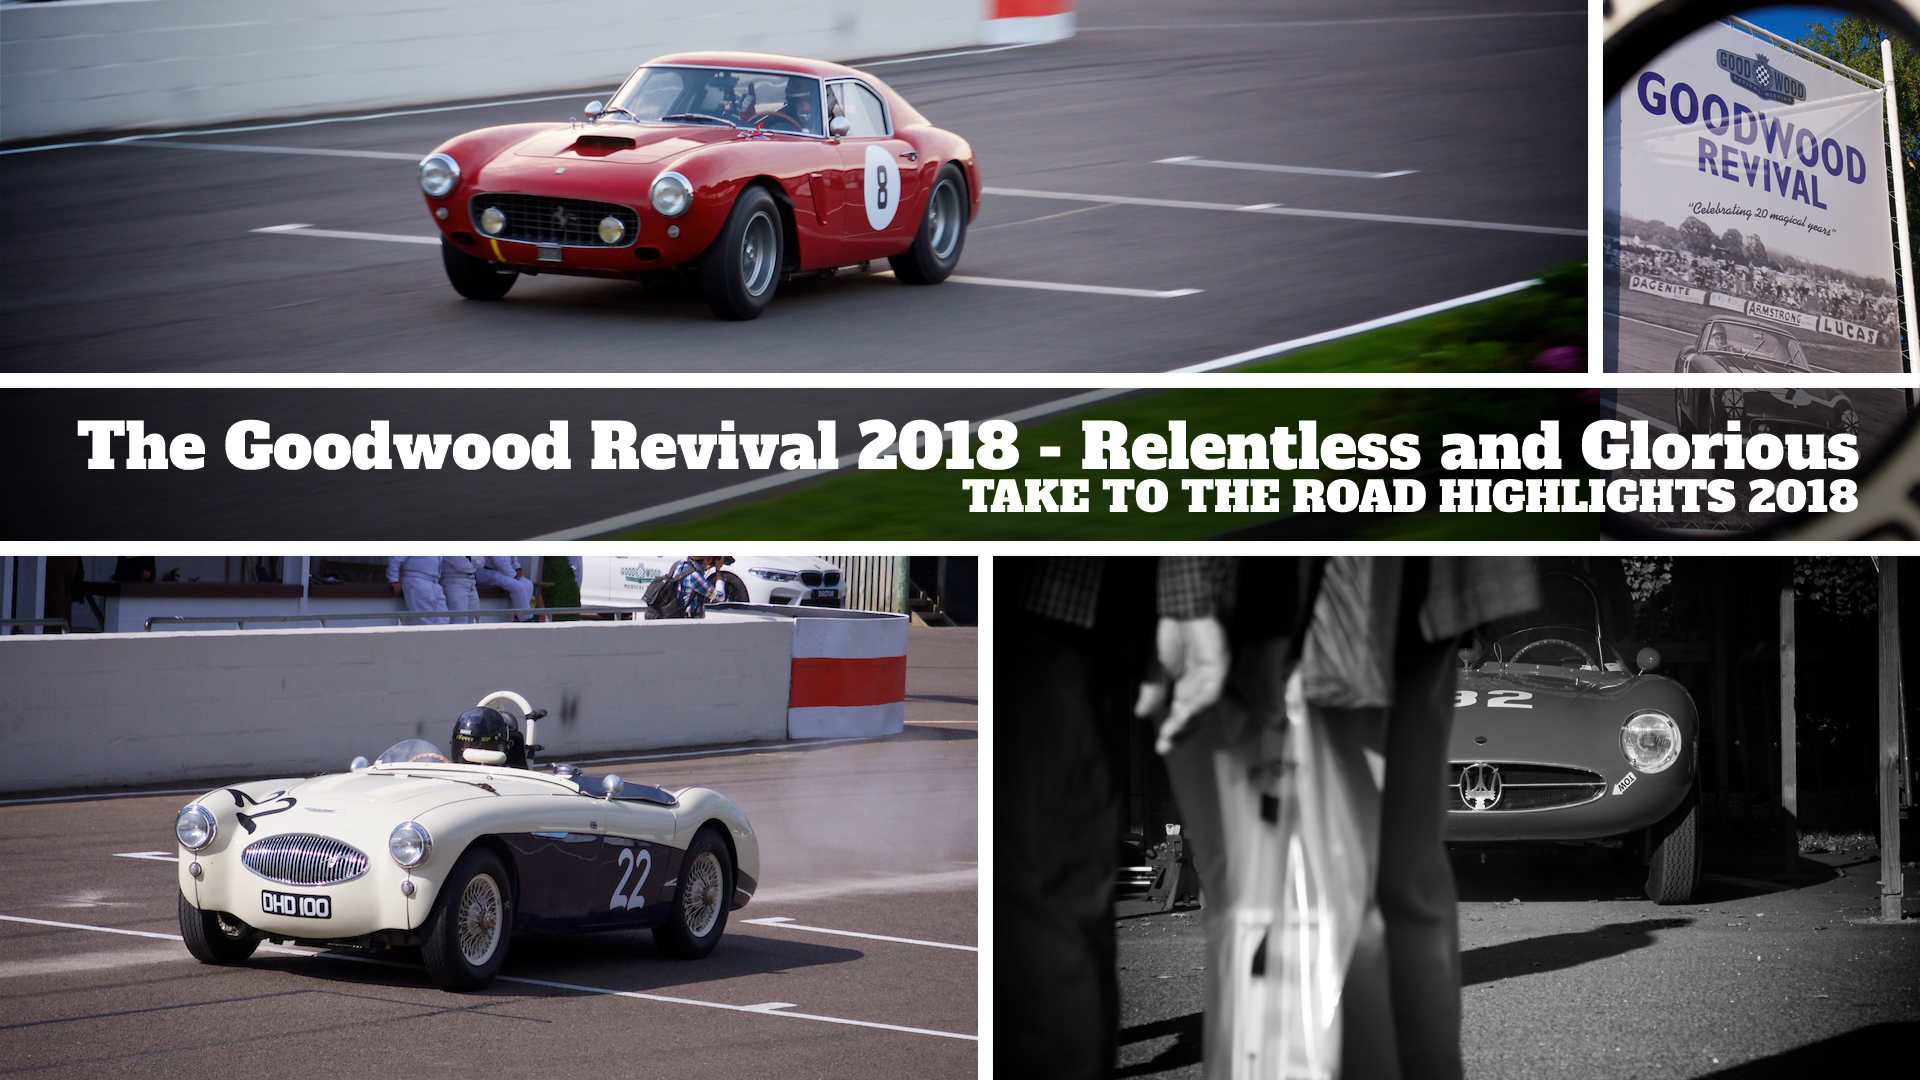 The Goodwood Revival 2018 – Relentless and Glorious